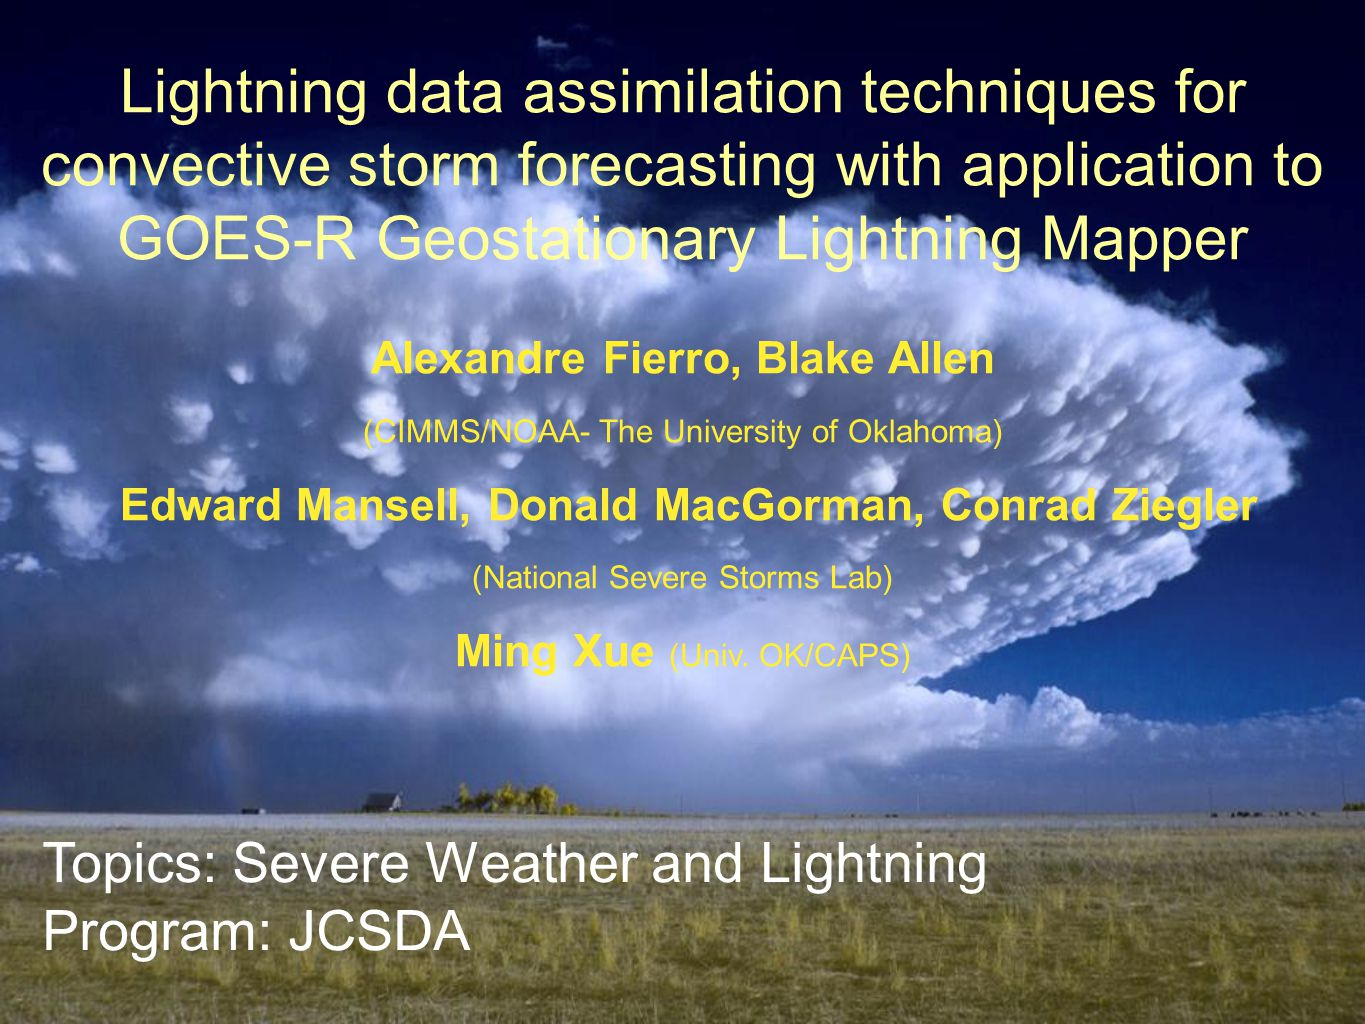 Lightning data assimilation techniques for convective storm forecasting with application to GOES-R Geostationary Lightning Mapper Alexandre Fierro, Blake Allen (CIMMS/NOAA- The University of Oklahoma) Edward Mansell, Donald MacGorman, Conrad Ziegler (National Severe Storms Lab) Ming Xue (Univ.